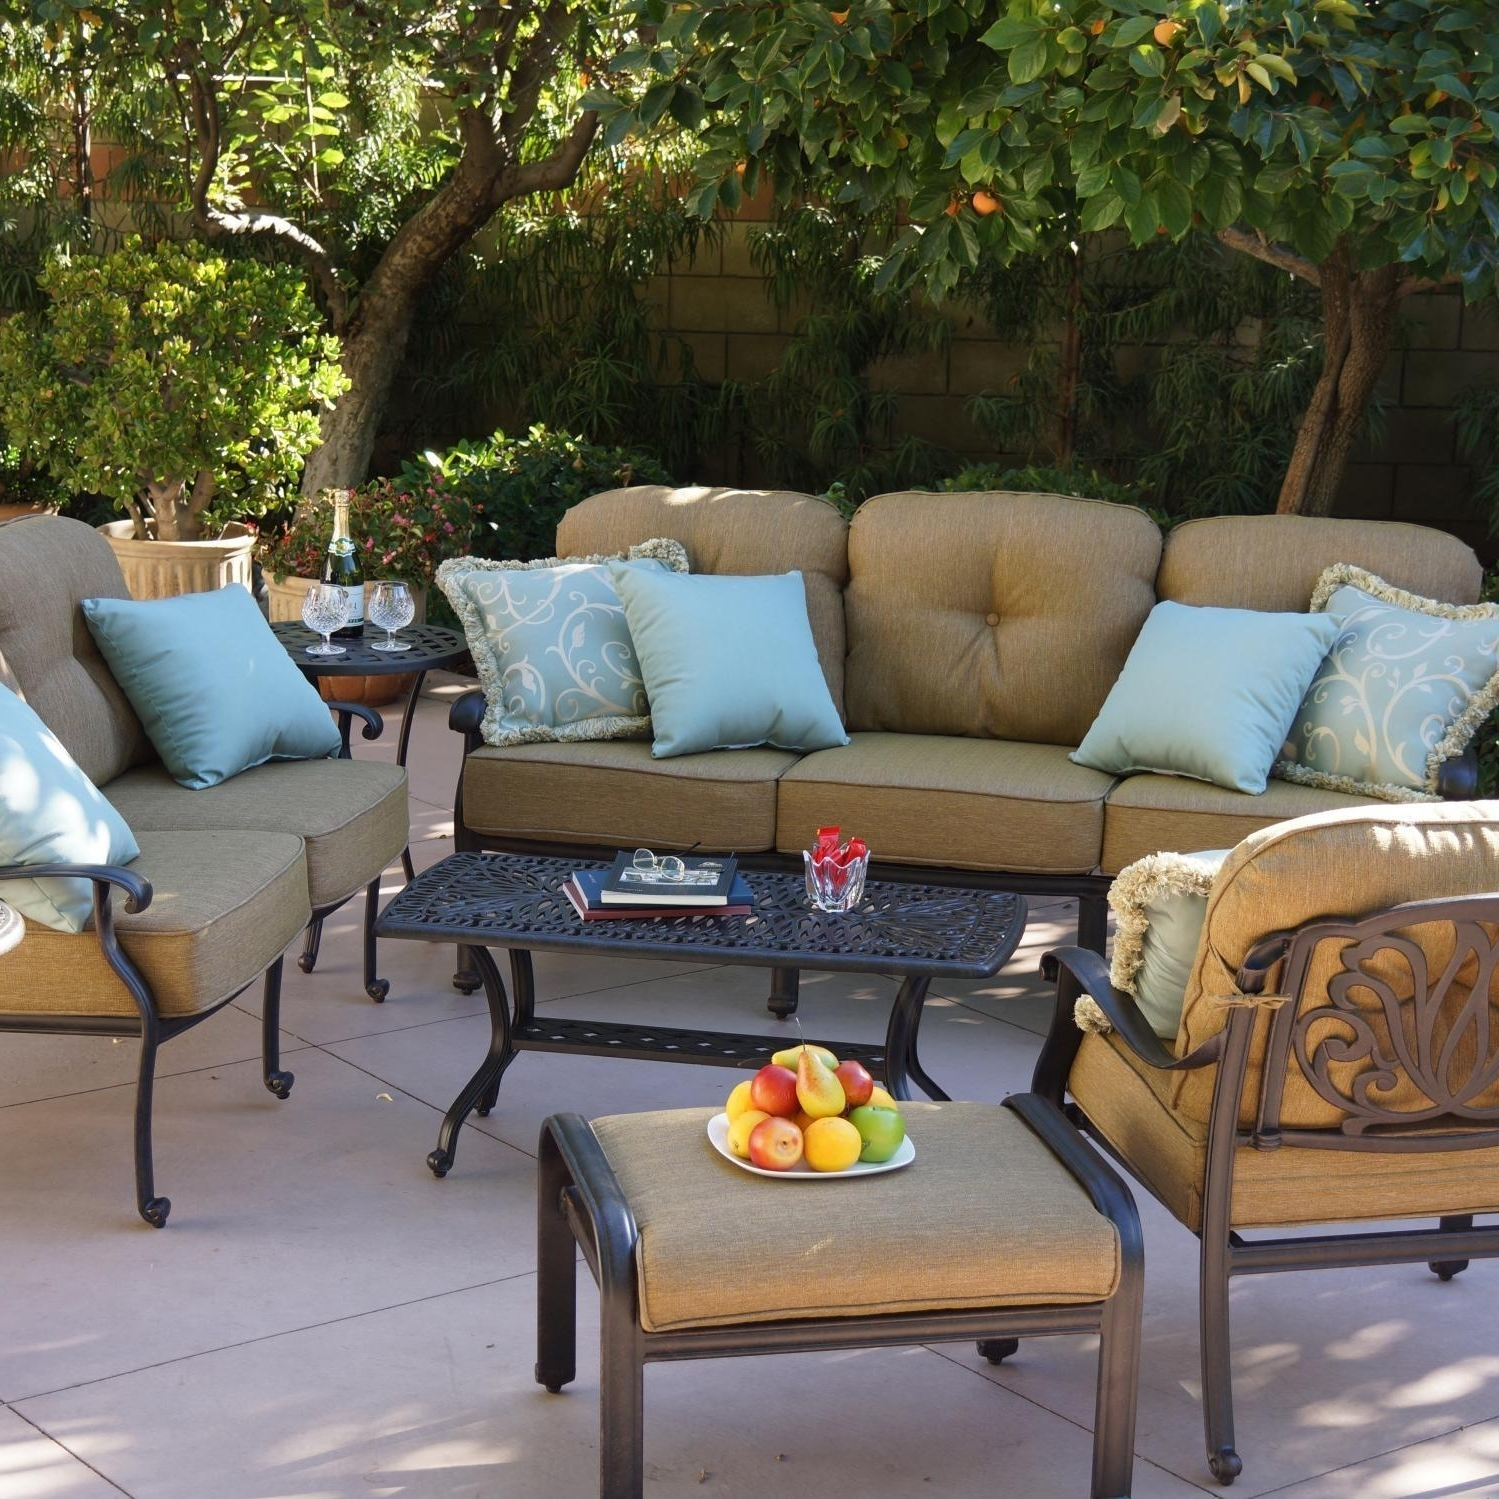 Preferred Patio Conversation Sets Without Cushions For Outdoor : Patio Sectionals For Small Spaces Patio Conversation Sets (View 10 of 15)